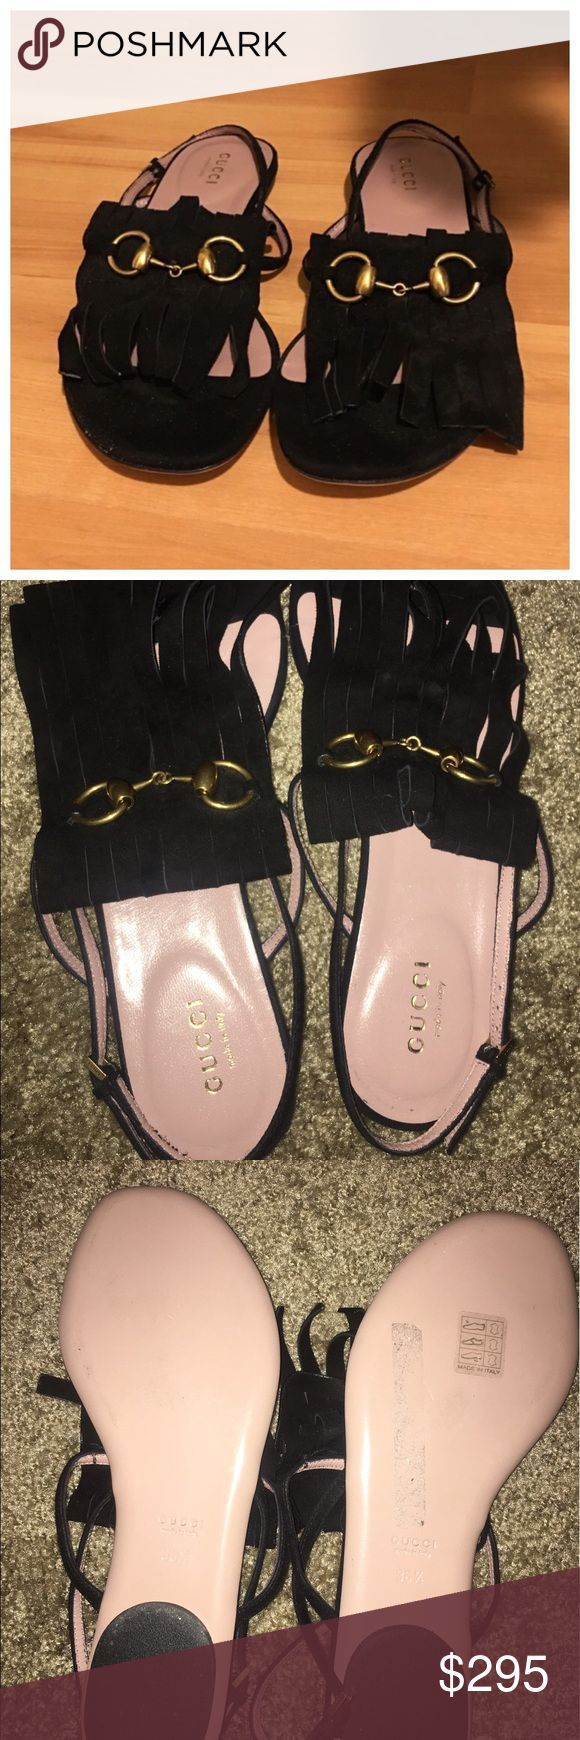 Authentic Gucci Sandals Like New Authentic Suede Gucci Sandals. MAKE AN OFFER. CHEAPER ON ♏️ with free shipping. Moving soon. Hoping for a quick sale. OPEN TO REASONABLE OFFERS. NO DUSTBAG OR BOX. Gucci Shoes Sandals